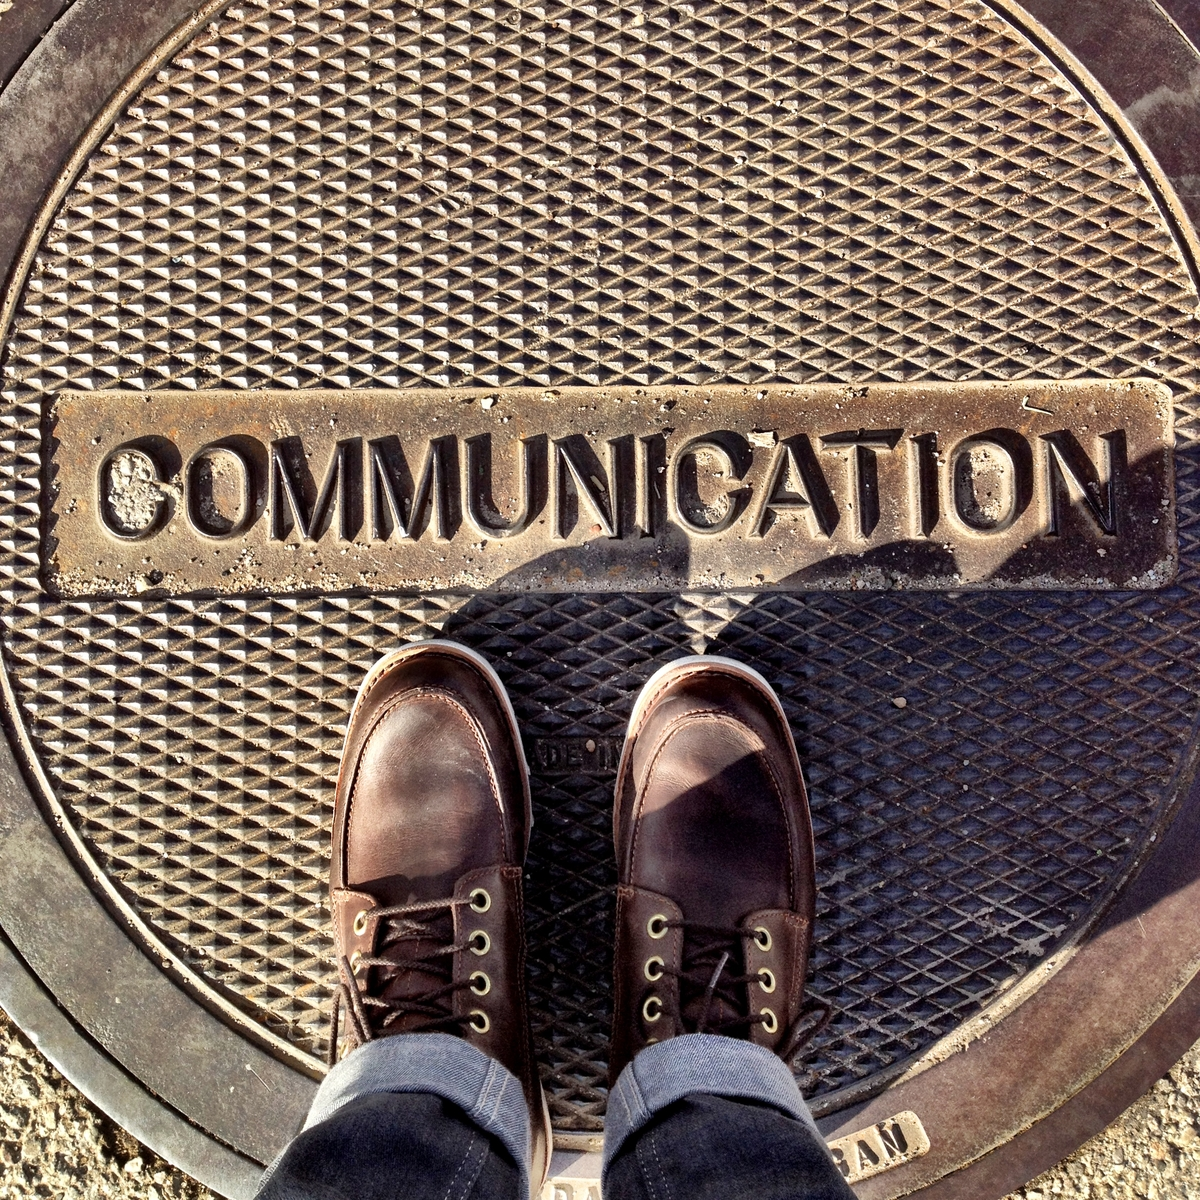 9 Of The Best Communication Tips For Churches